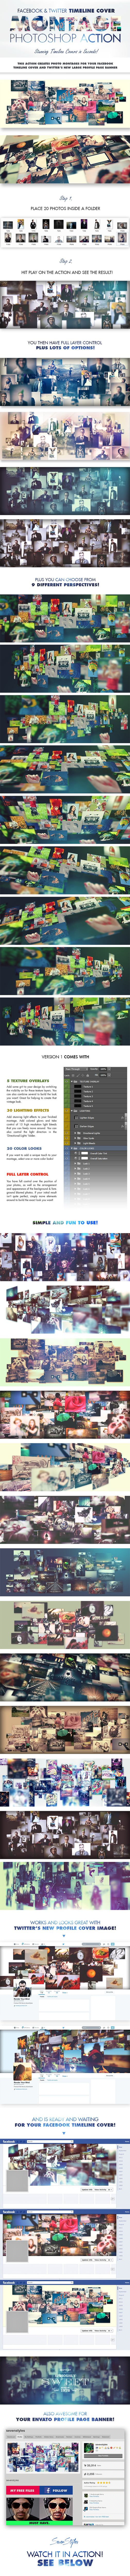 Facebook & Twitter Timeline Cover Montage Action - Actions Photoshop